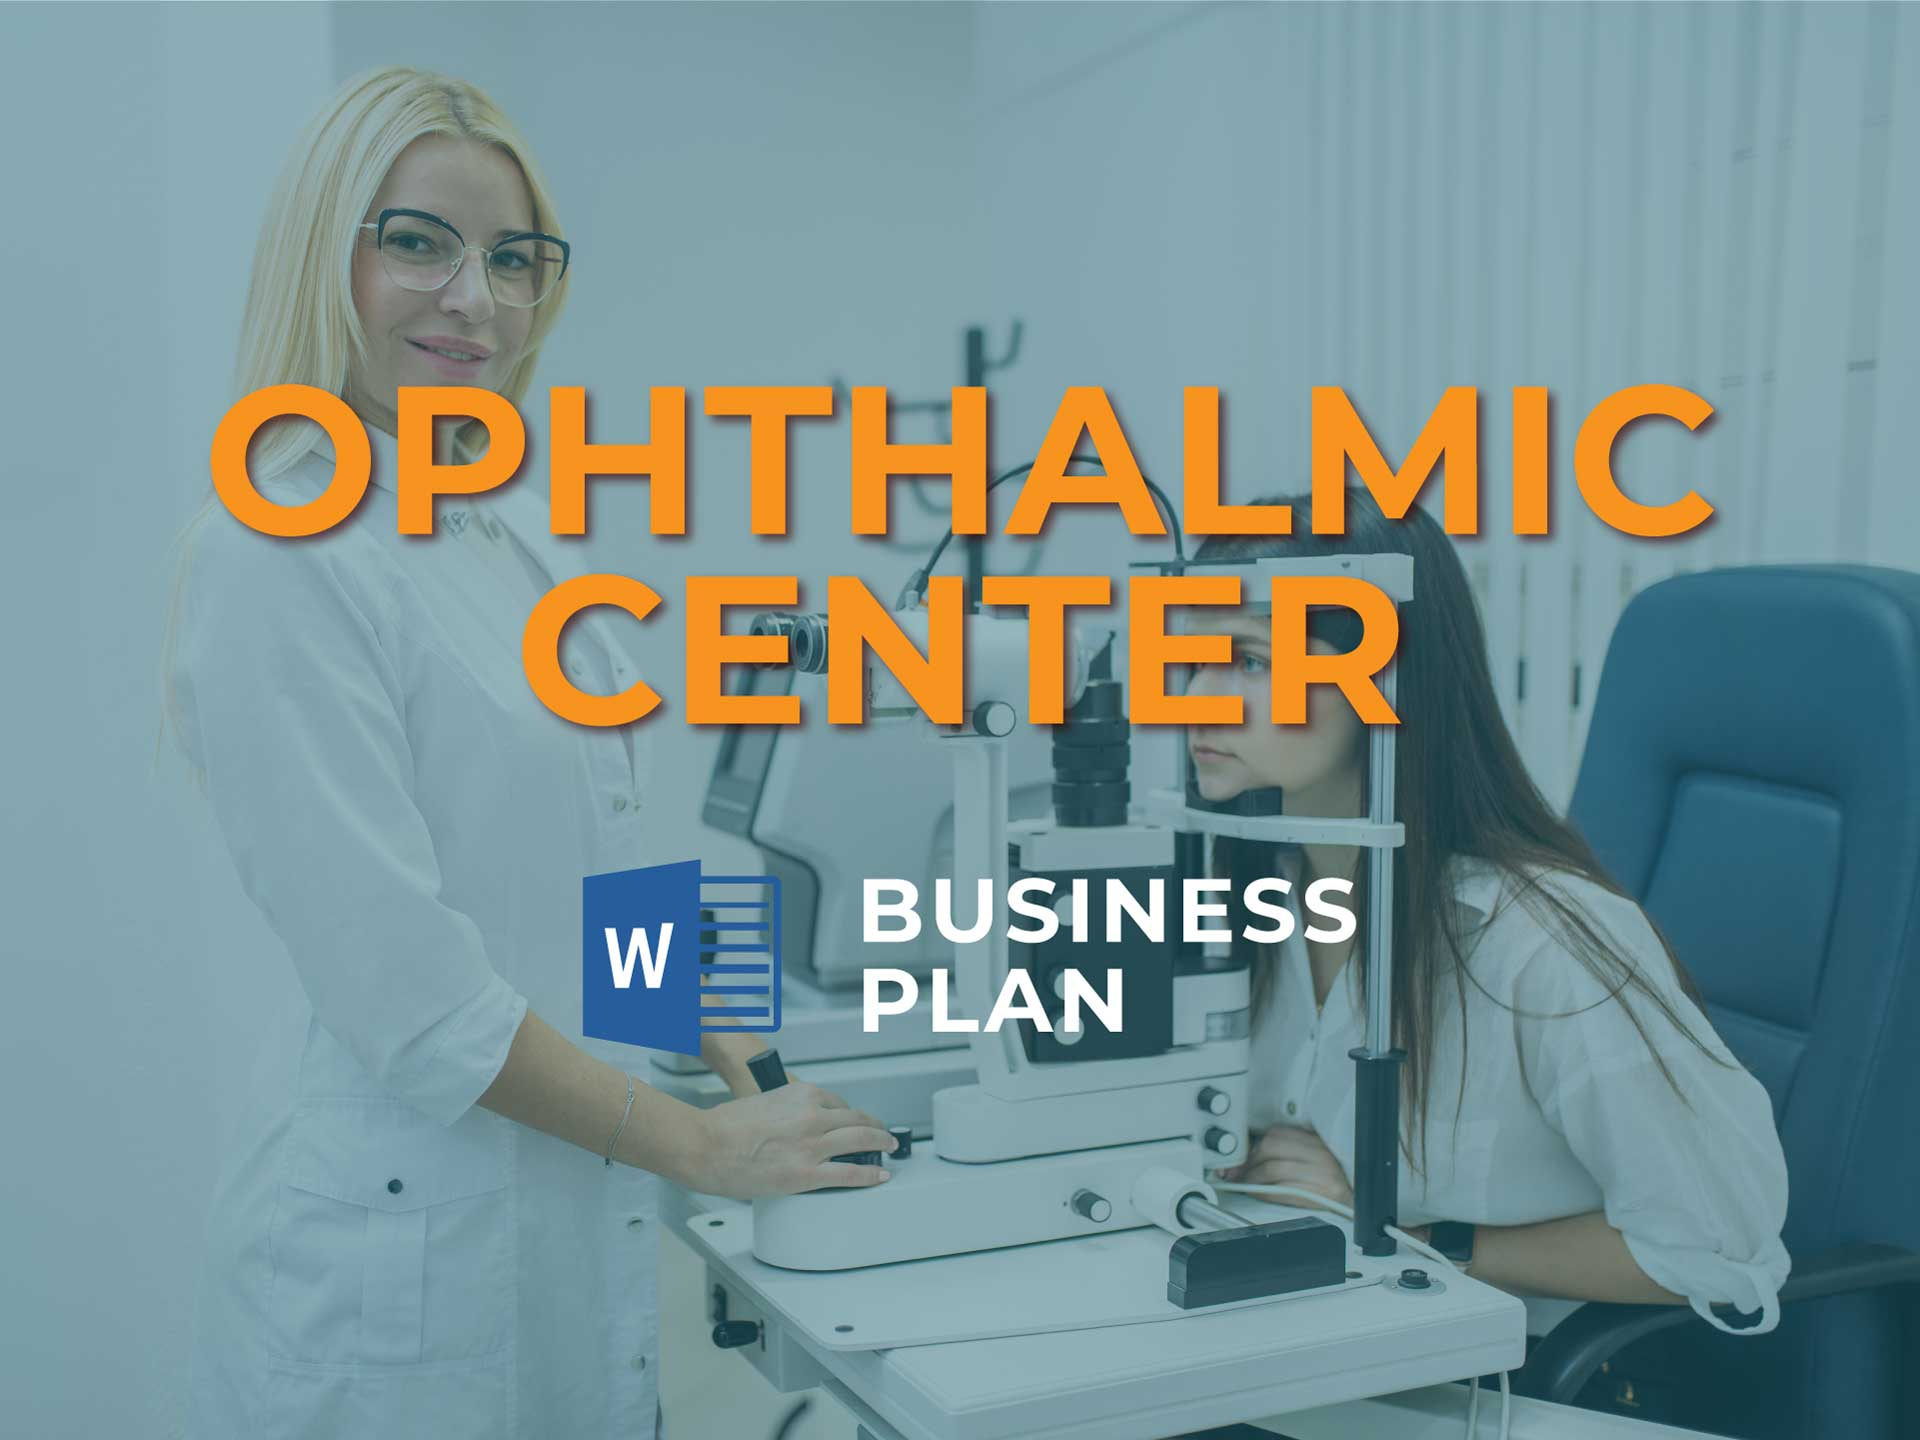 Ophthalmic Center